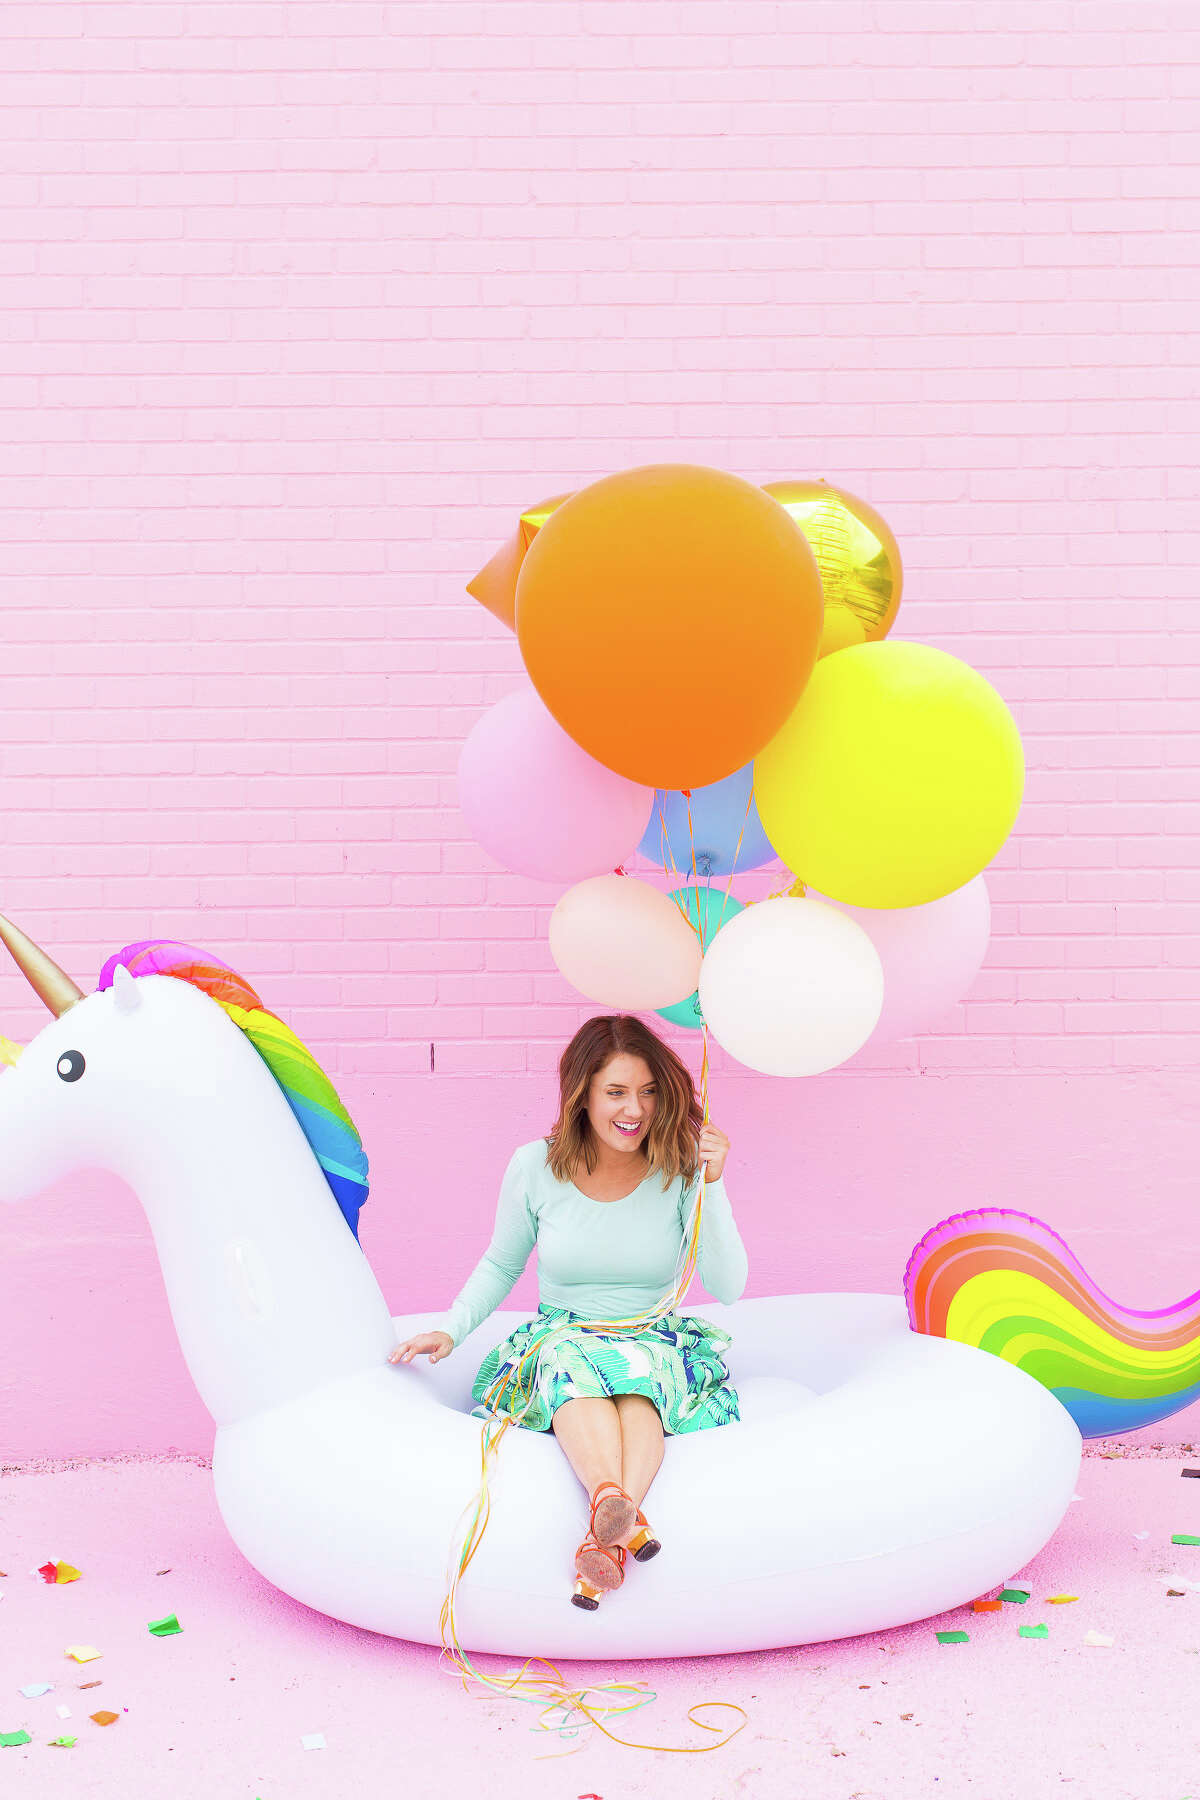 Ashley Rose, founder and creative director of Sugar &Cloth, a DIY blog with nearly 300,000 Instagram followers.